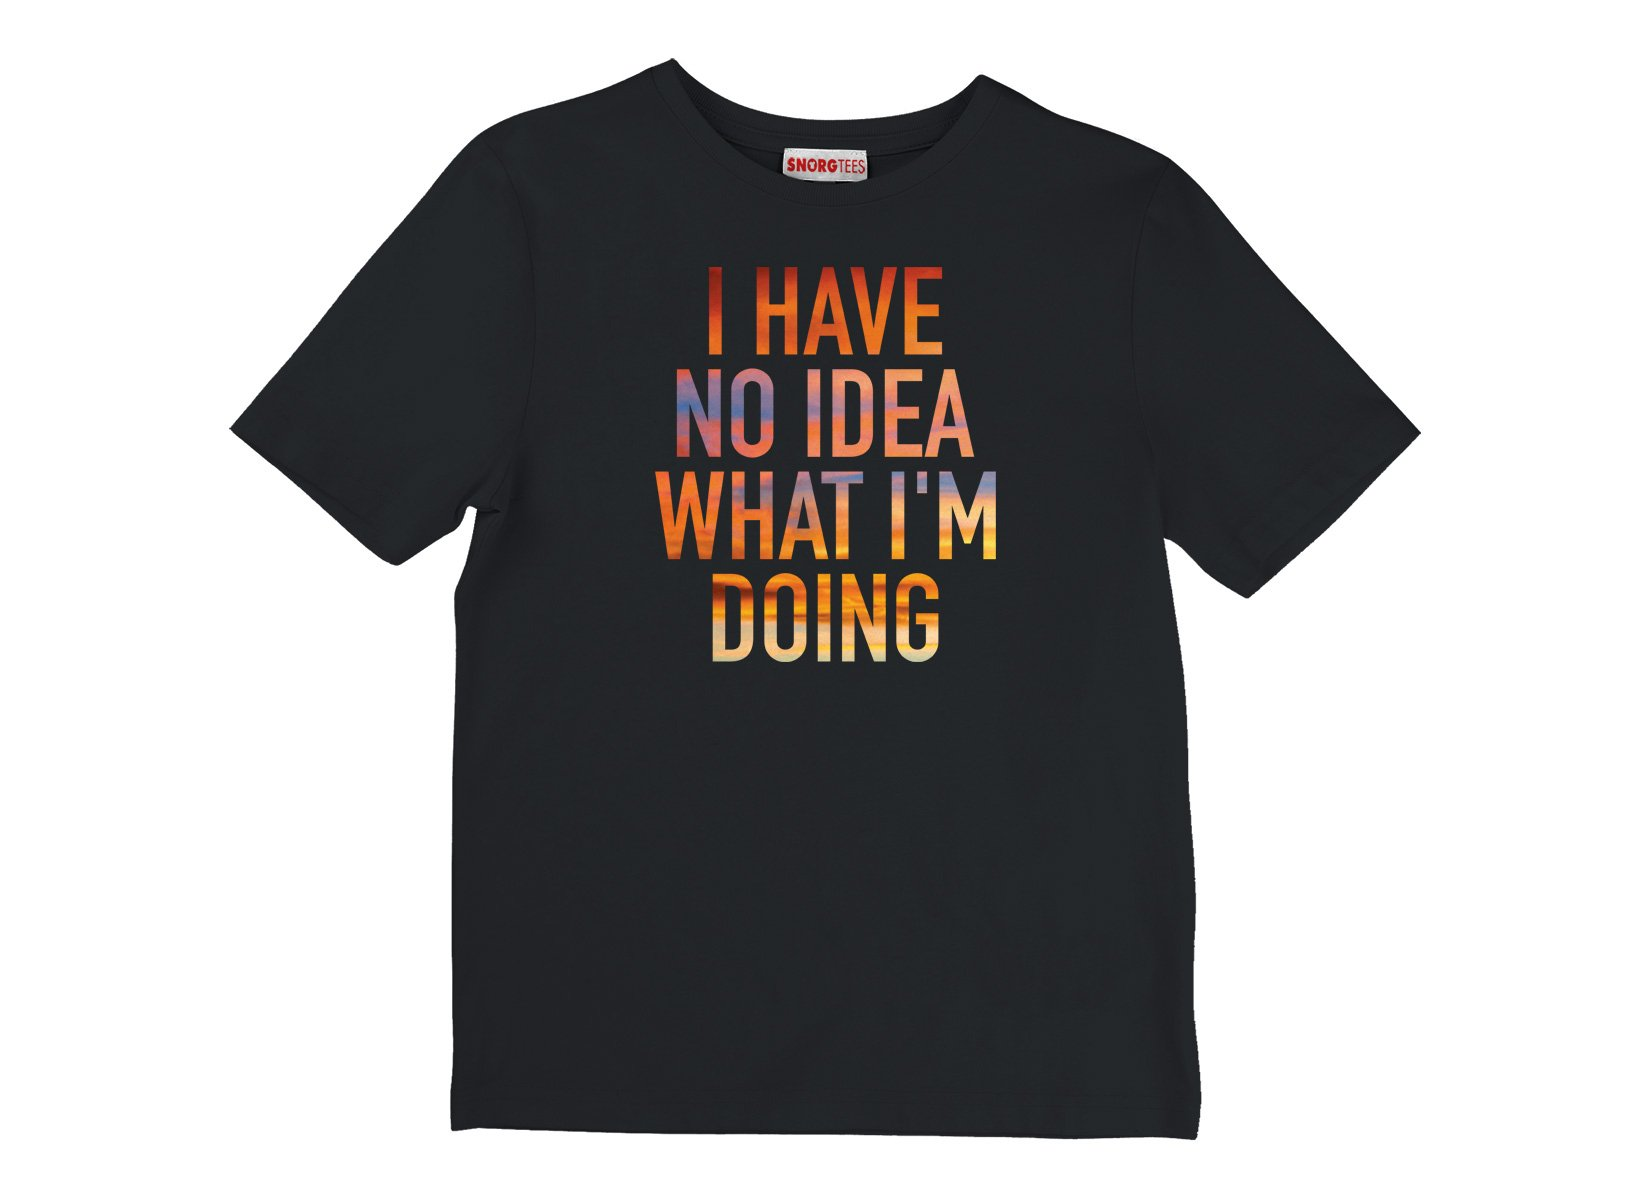 I Have No Idea What I'm Doing on Kids T-Shirt